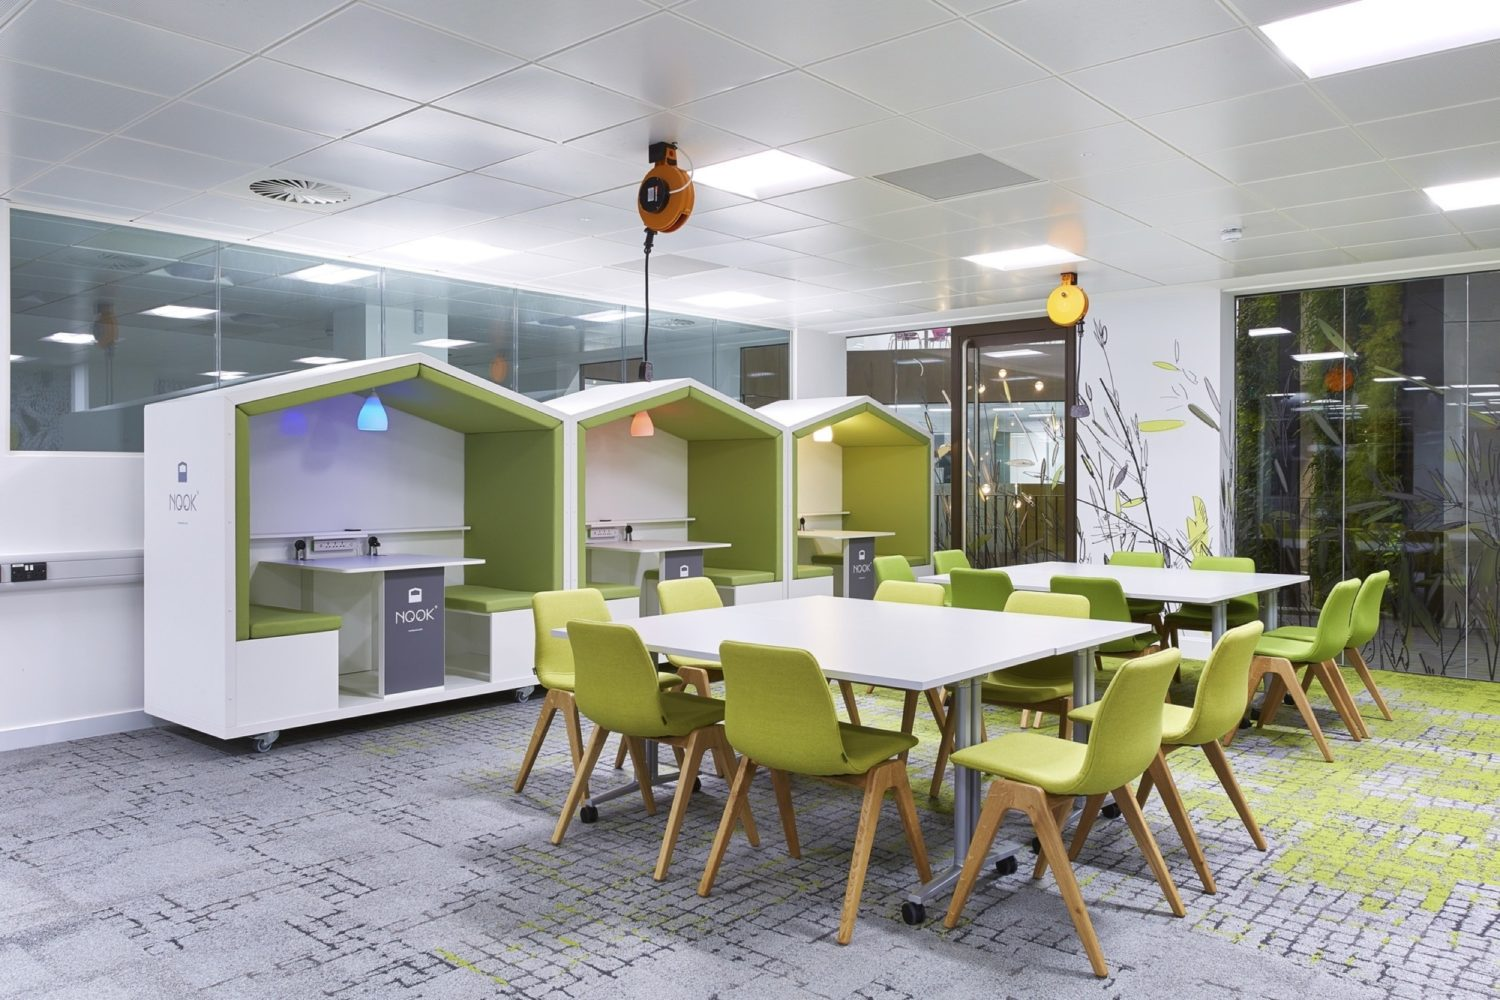 University of Bristol communal space fit out